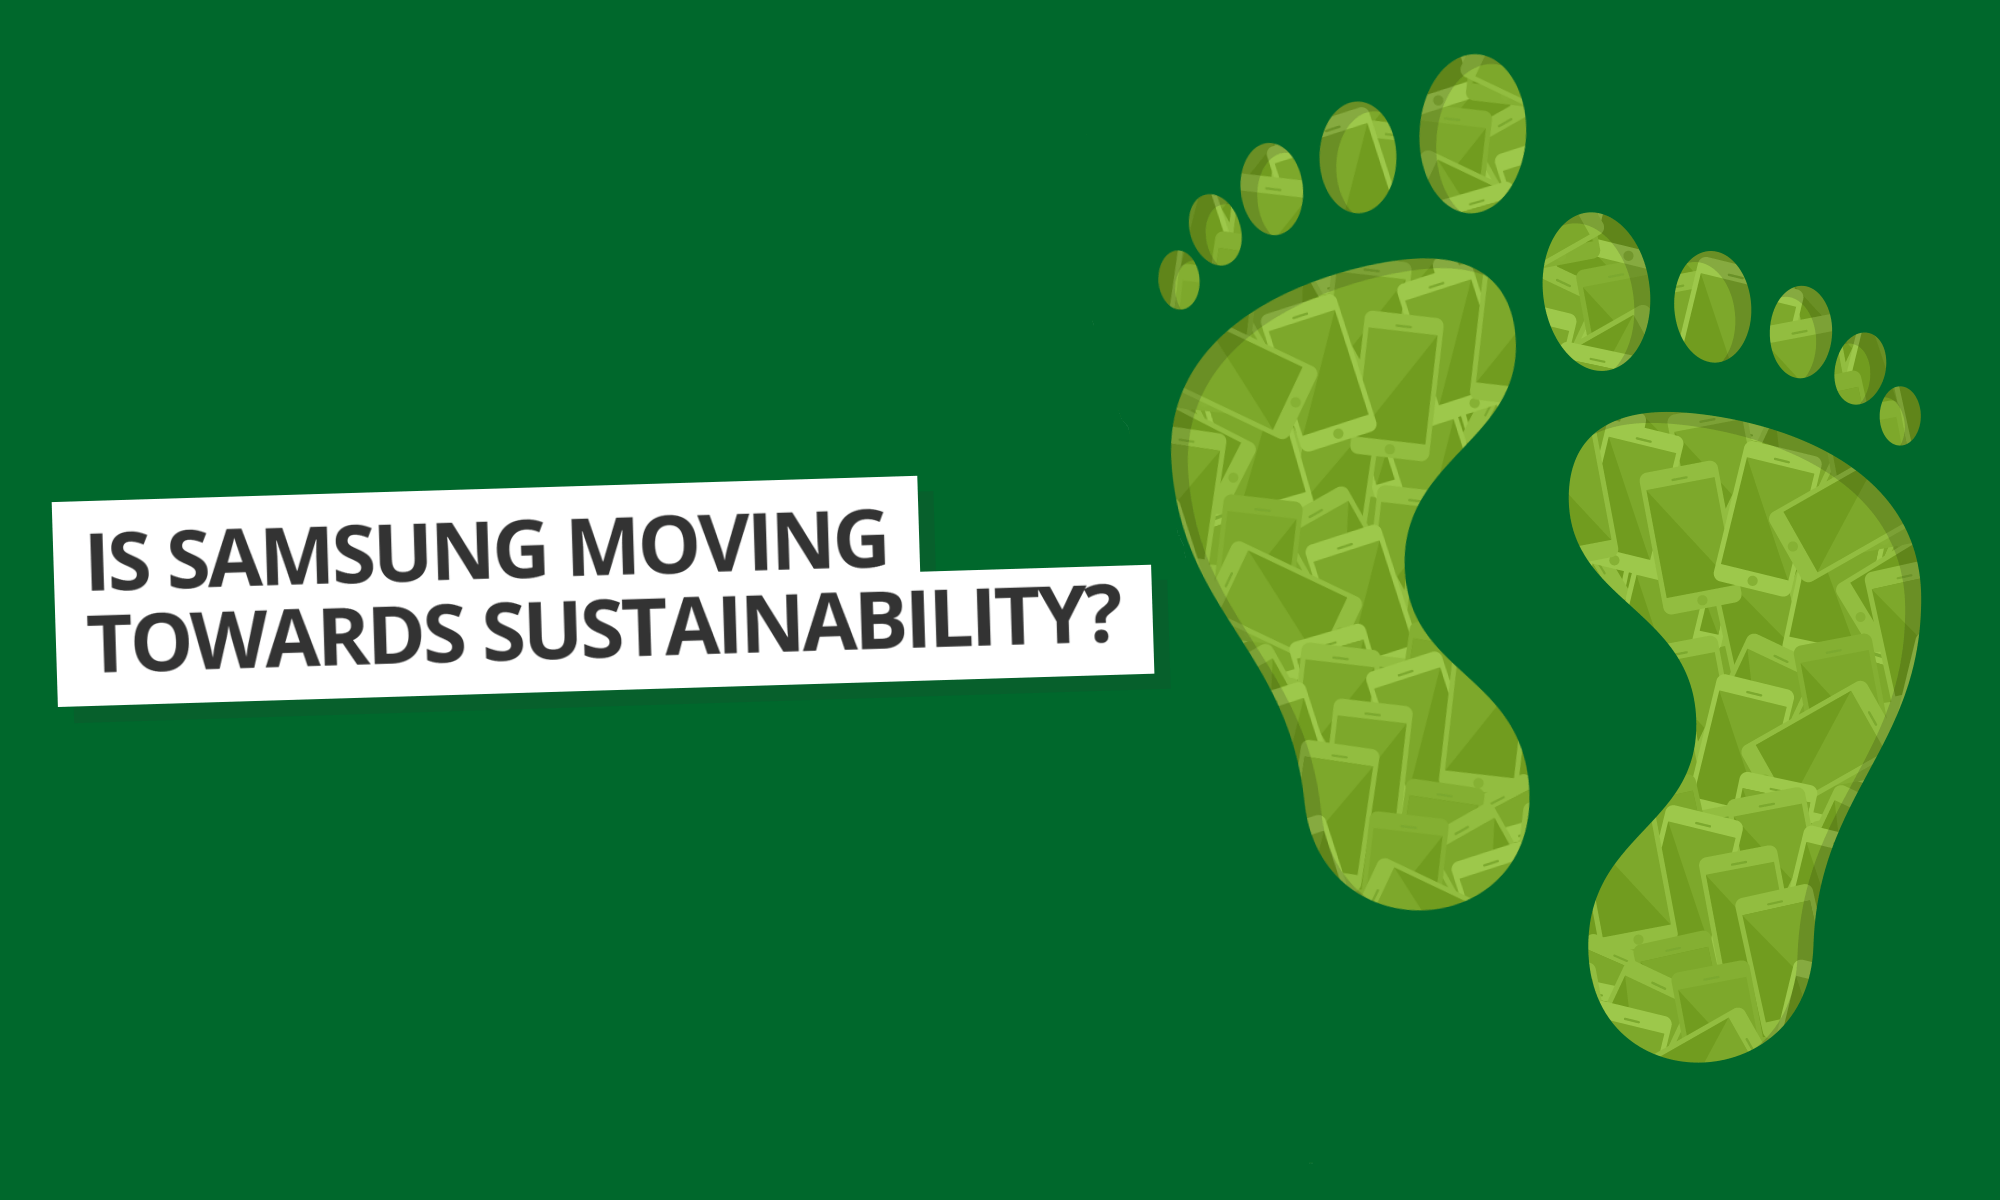 Samsung's Sustainability Report 2019: Are They Environmentally Friendly Now?